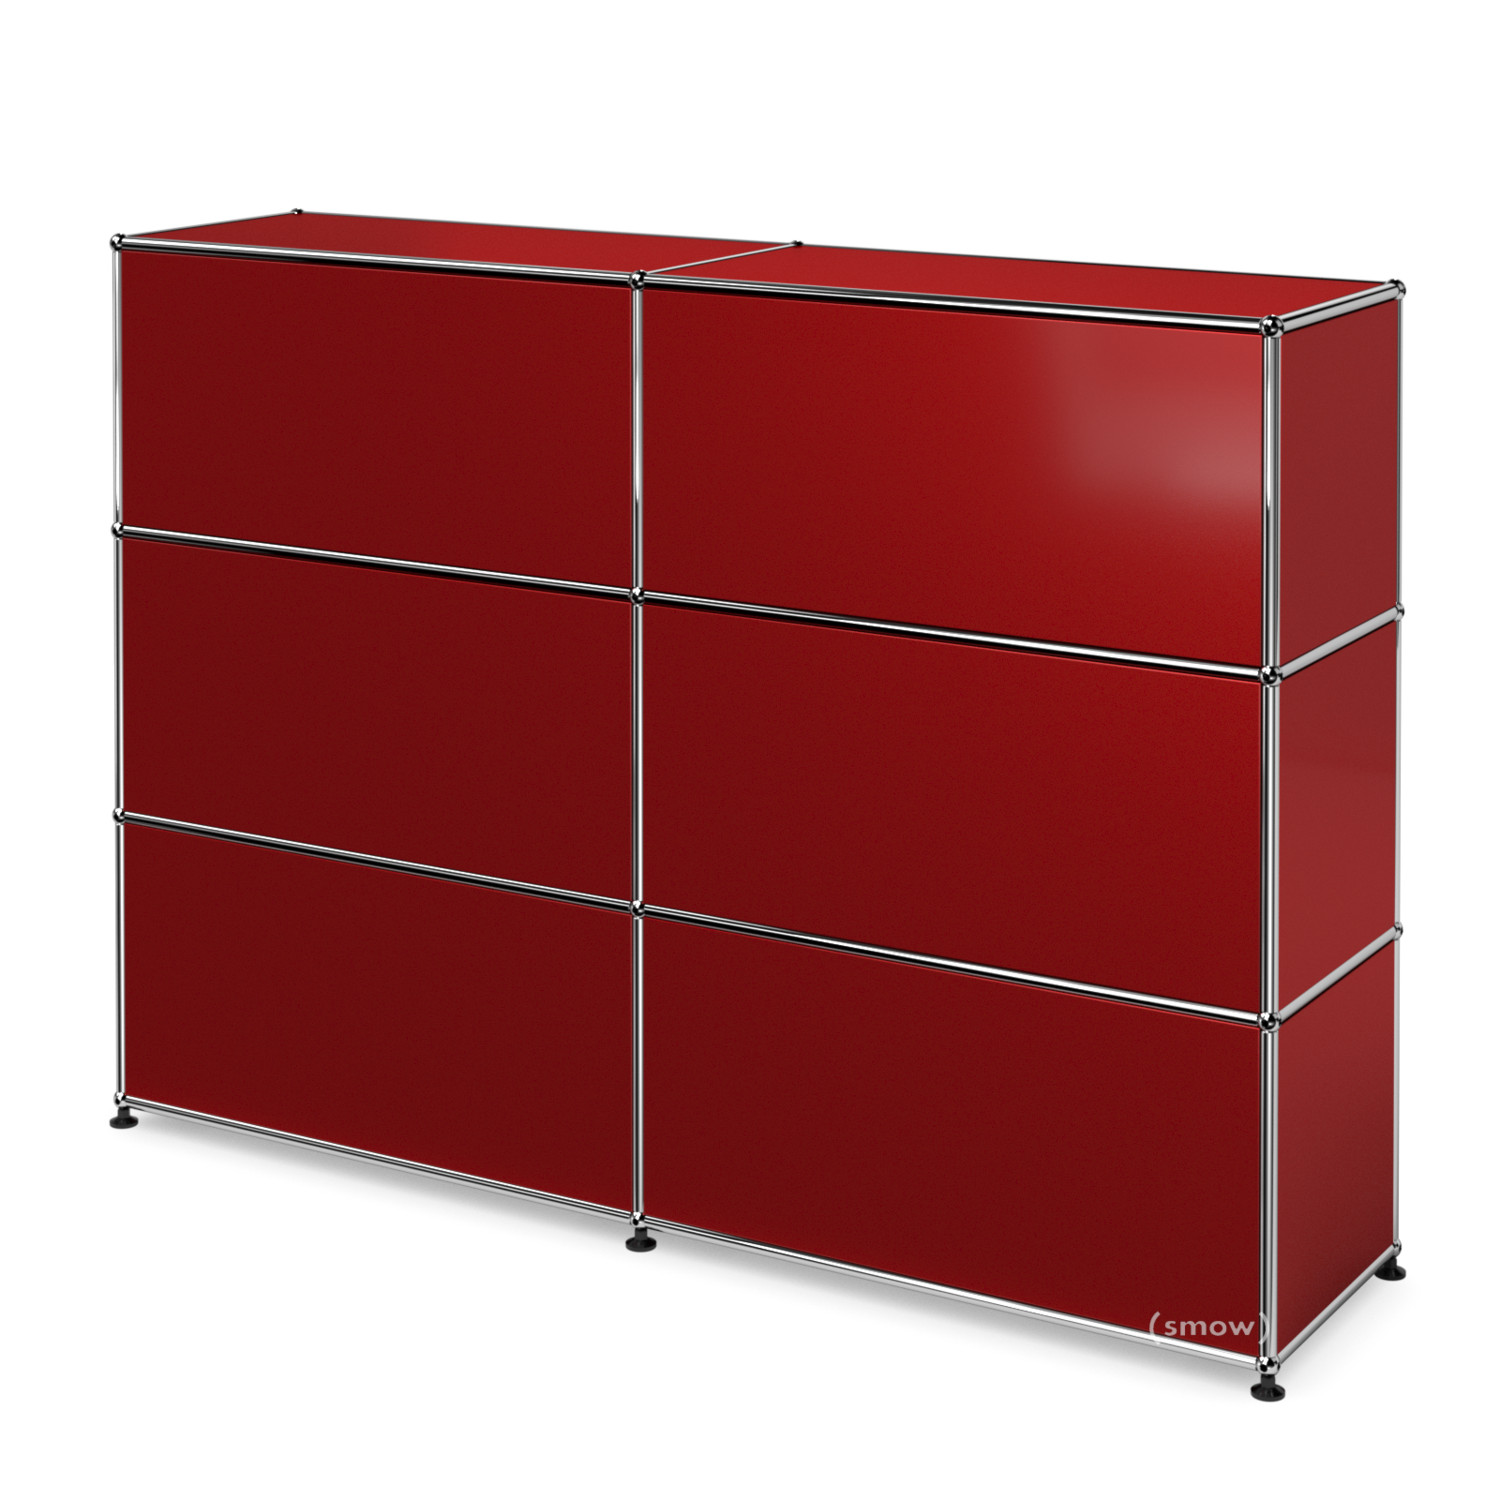 Usm Haller Counter Type 1 Usm Ruby Red 150 Cm 2 Elements 35 Cm By Fritz Haller Paul Schärer Designer Furniture By Smow Com